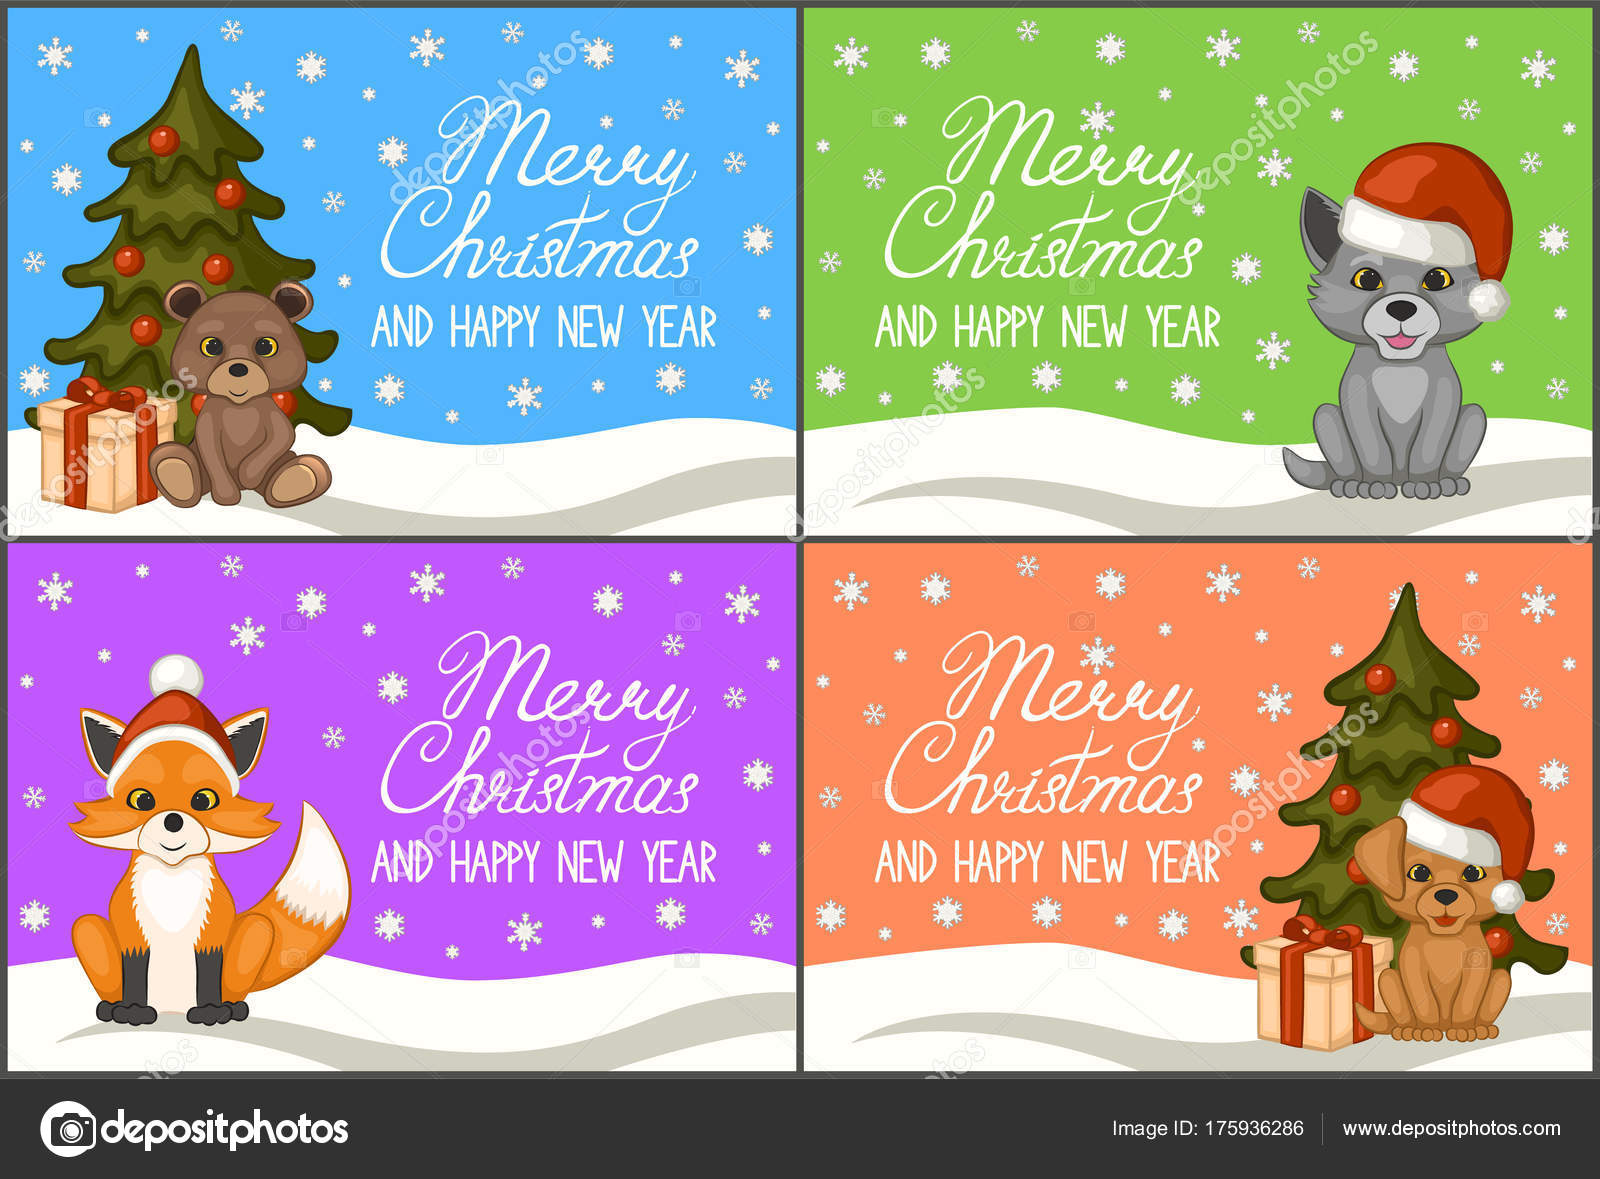 Merry Christmas Happy New Year Set Greeting Cards Posters Cute ...